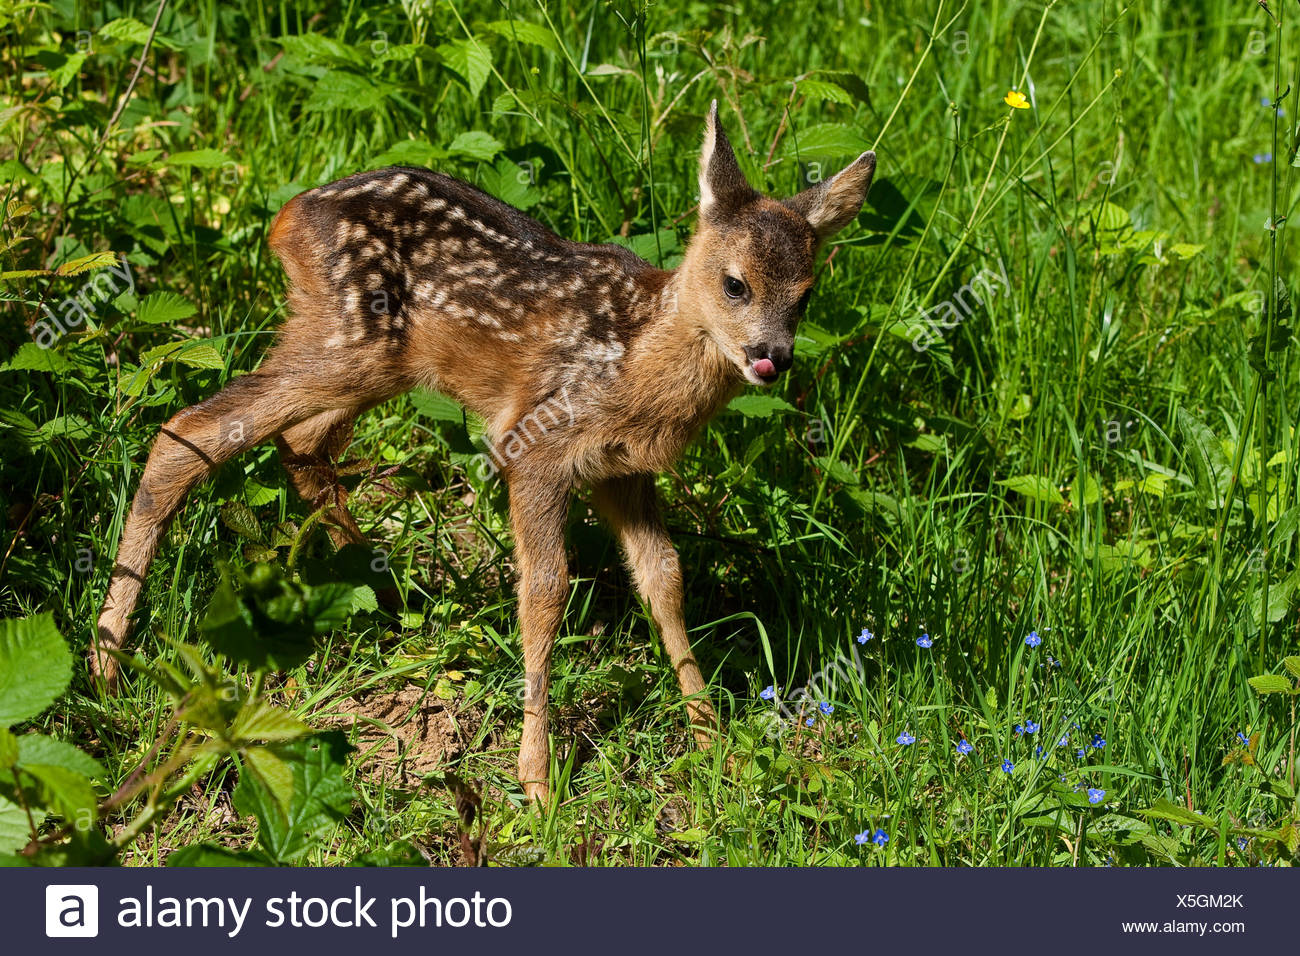 roe deer (Capreolus capreolus), fawn in a meadow frisst Blueten licking its mouth, Germany - Stock Image